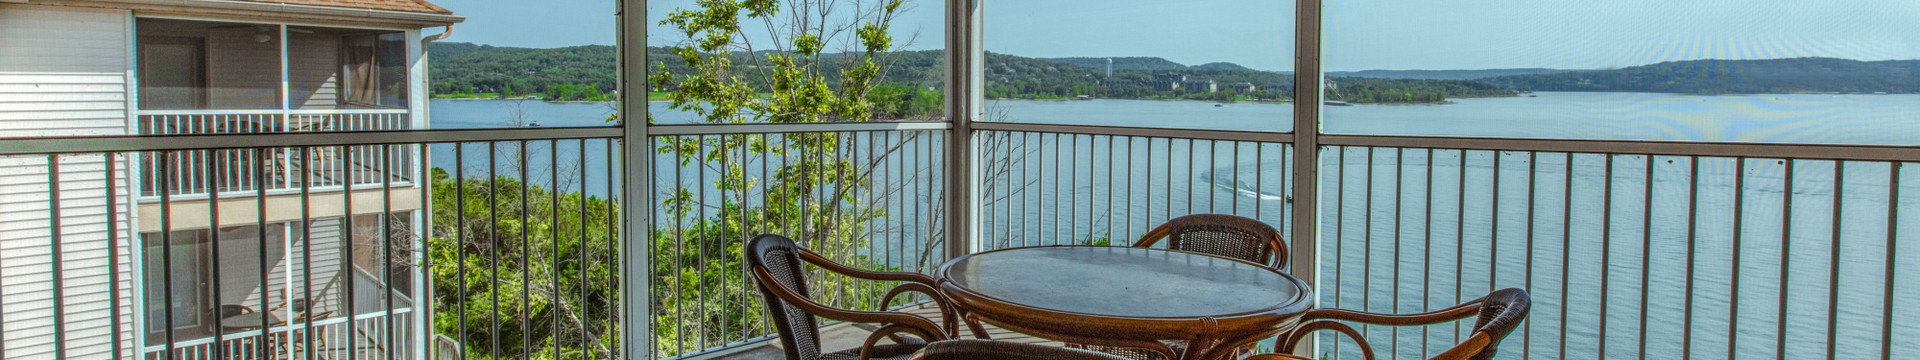 Special Discount Rates for Branson Table Rock Lake Resort at Emerald Pointe | Resort Building Overlooking Table Rock Lake